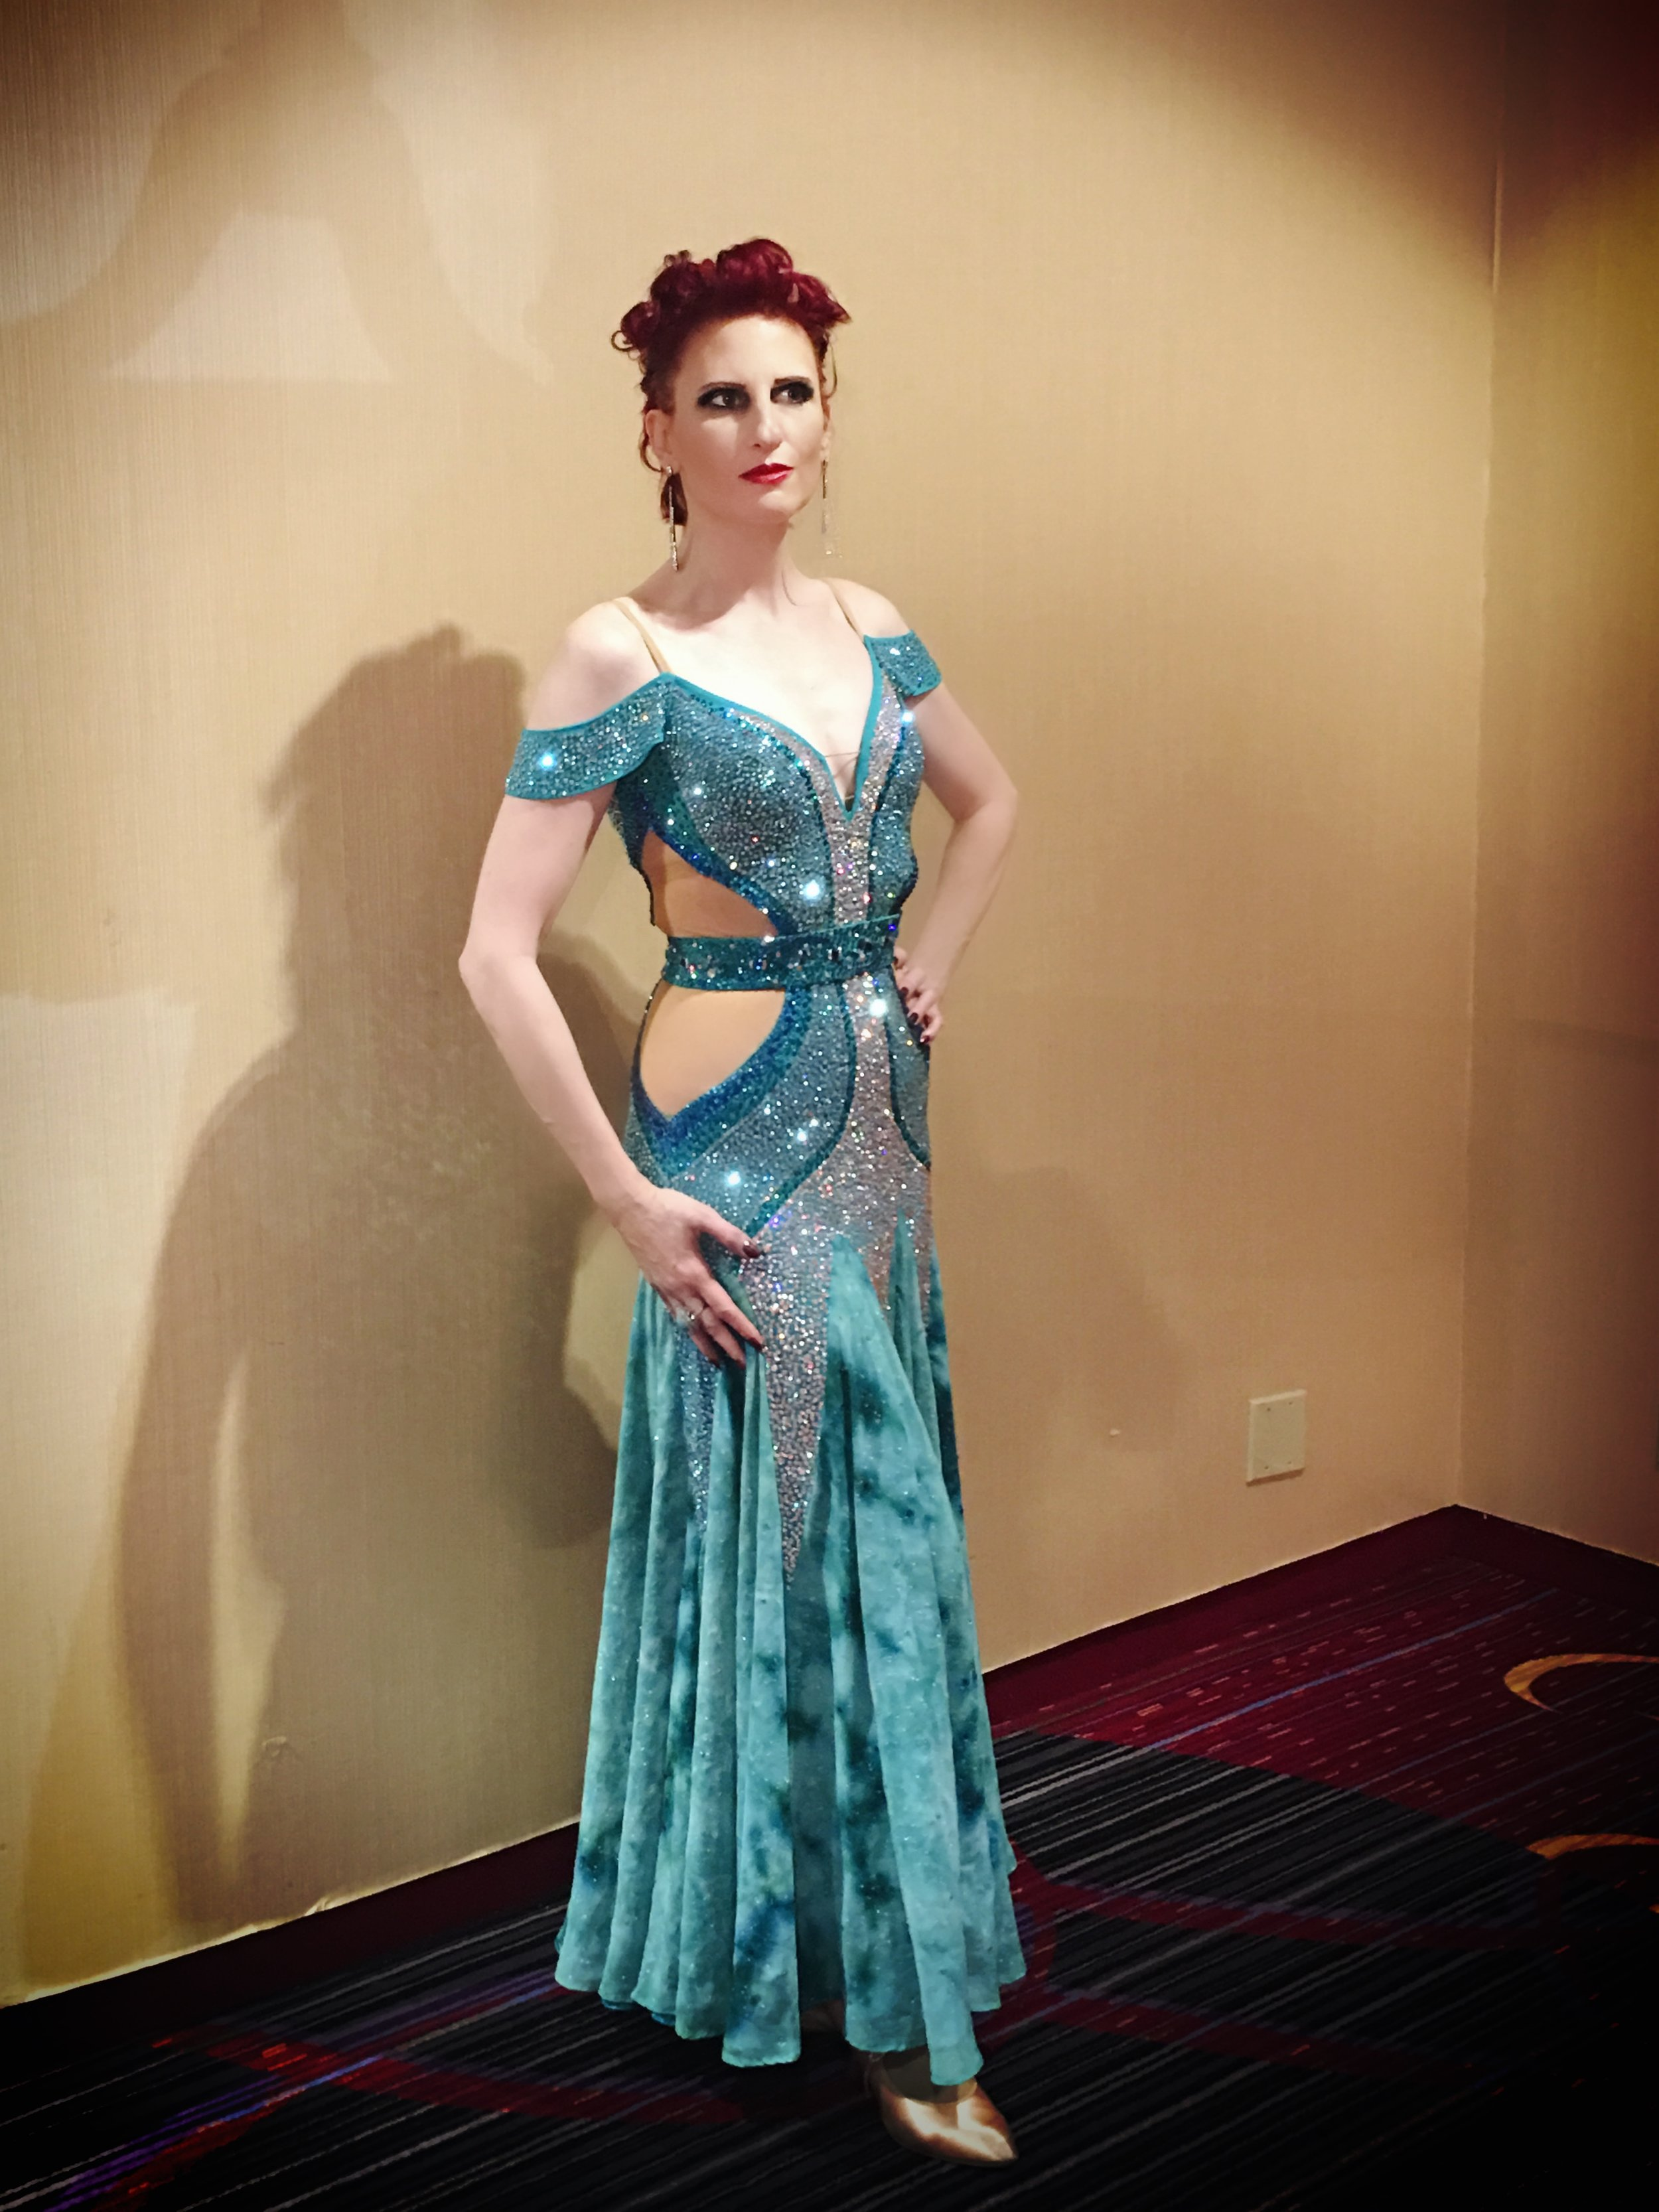 Dress Courtesy of  Classic Ballroom Elegance  Hair & Make-up by Melanie Rivera